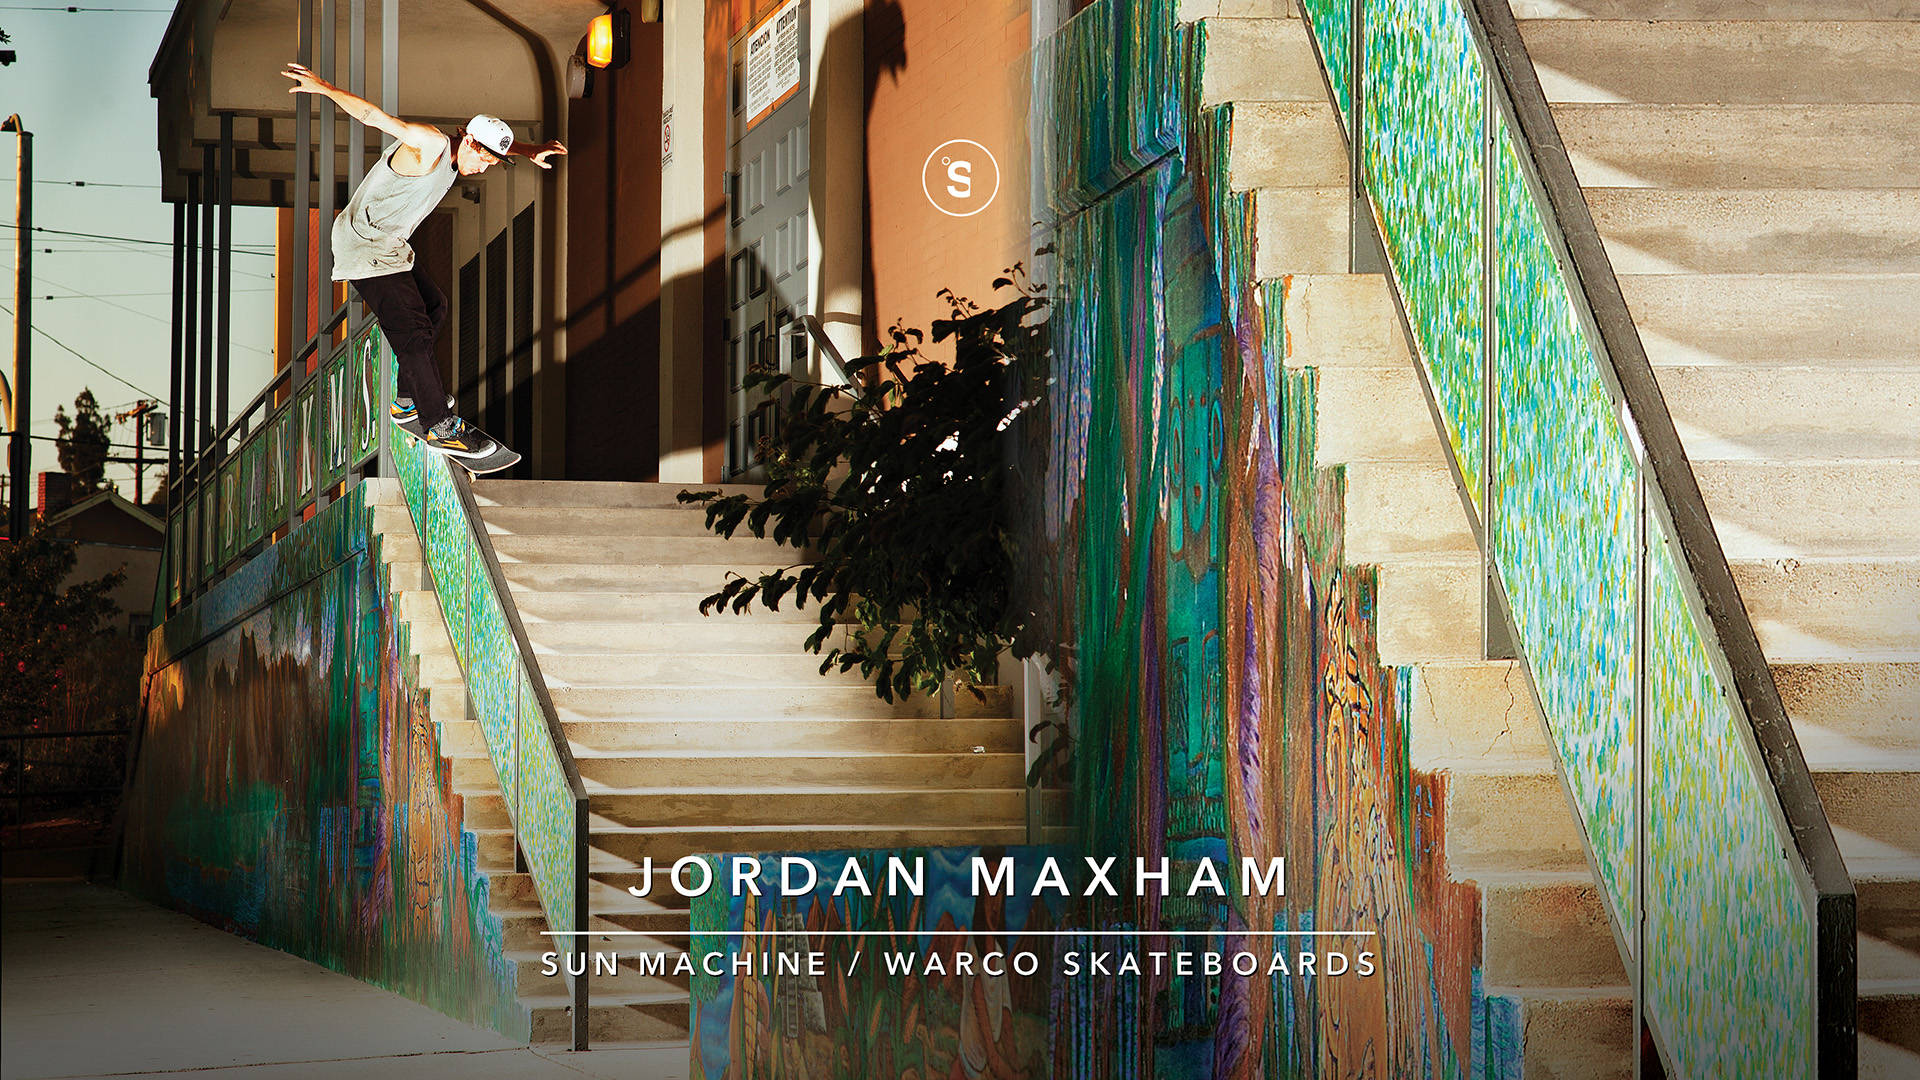 JORDAN MAXHAM - SUN MACHINE -- Warco Skateboards